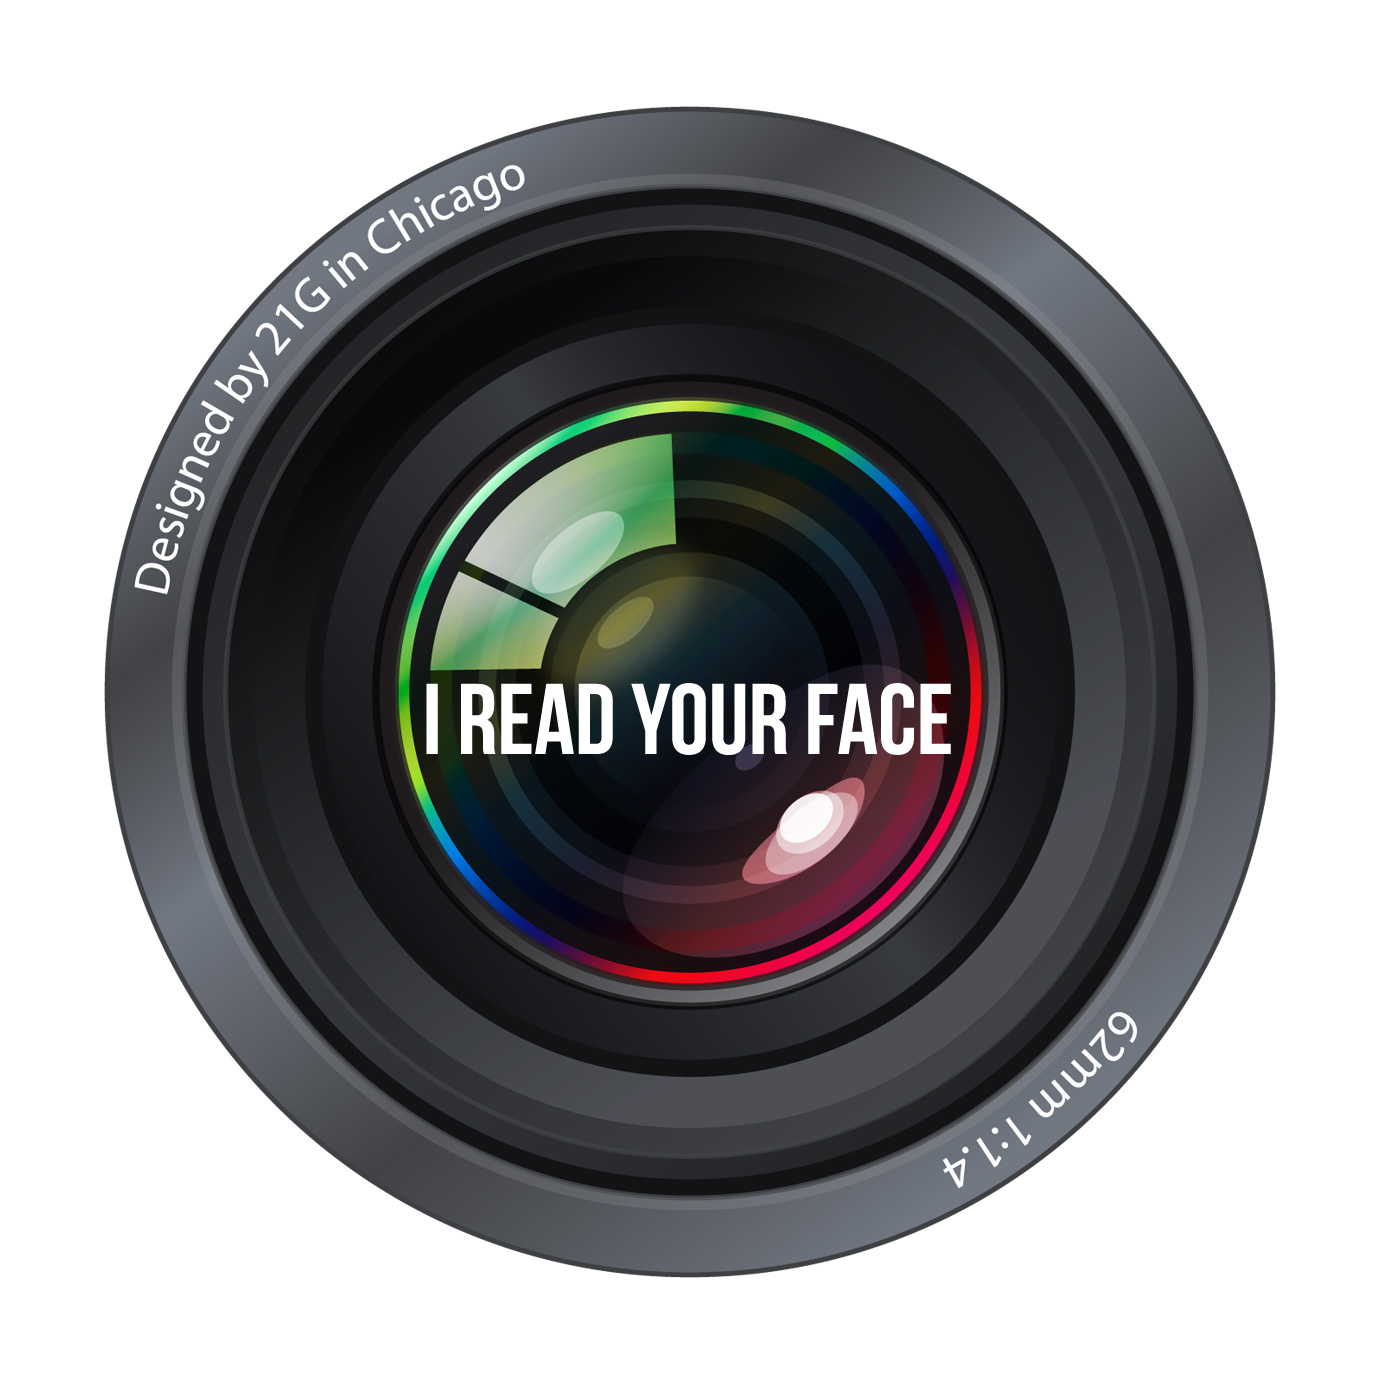 facereadingcamera